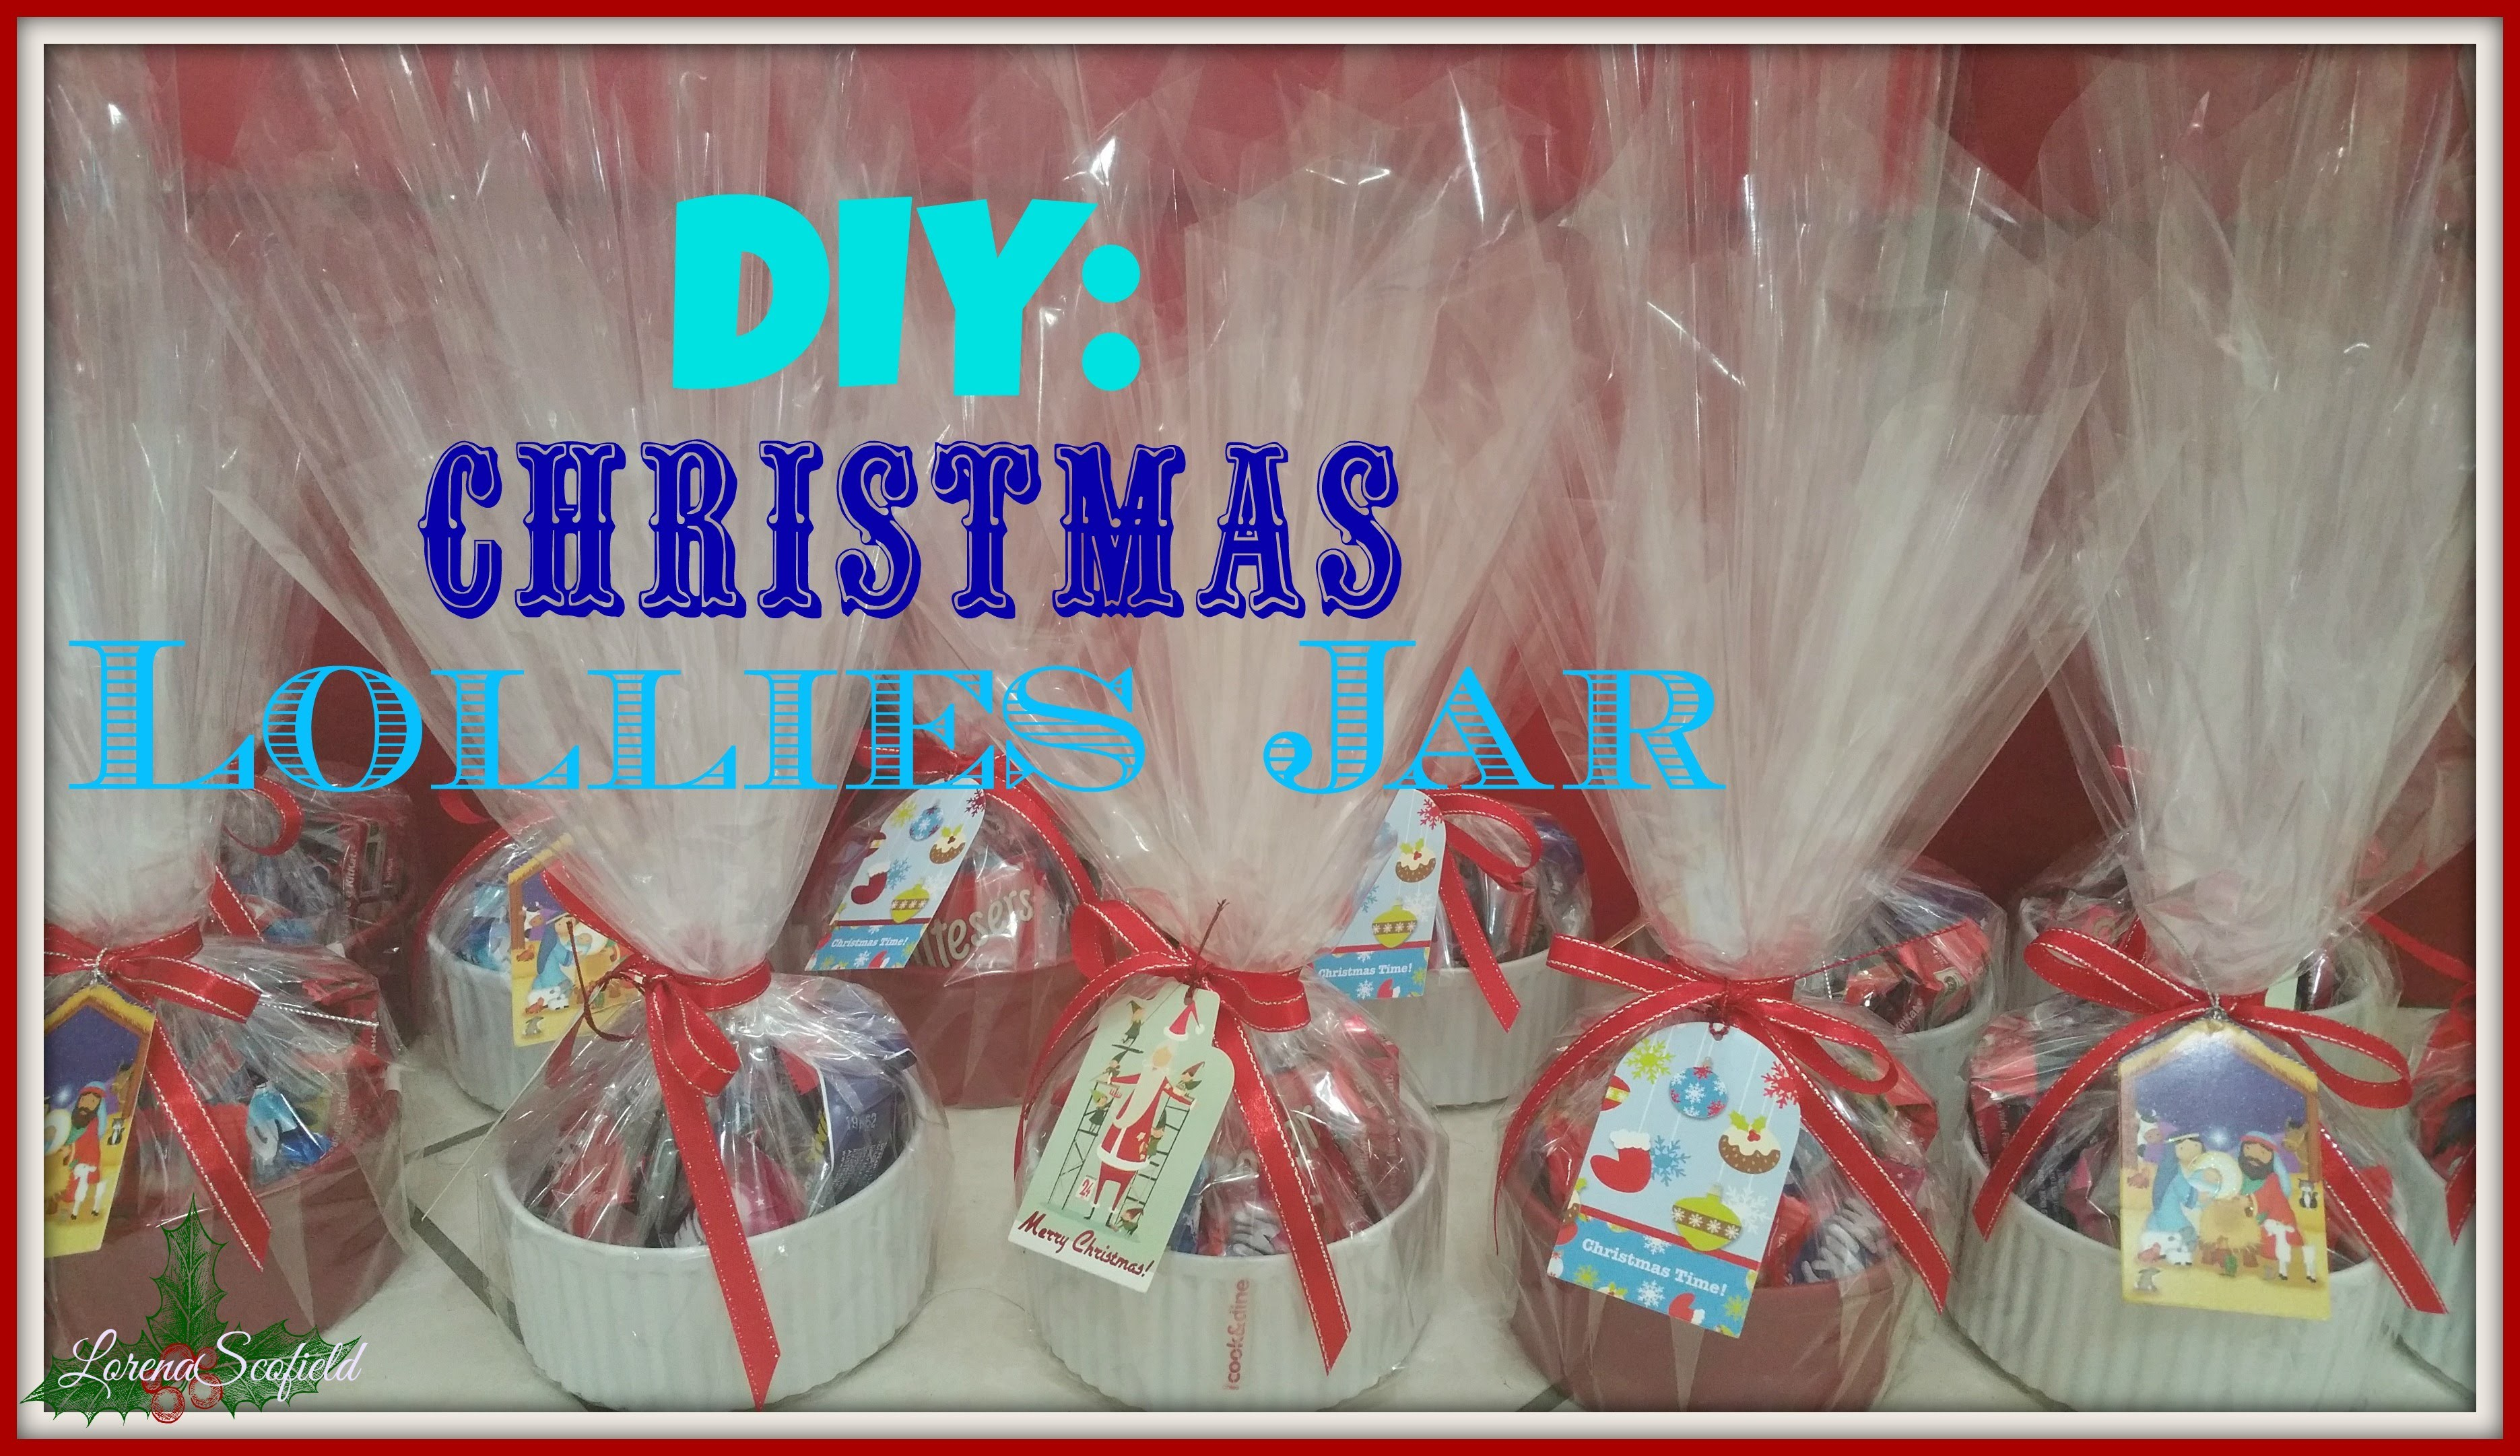 ChristmasEdition2015: DIY: Christmas Lollies Jar